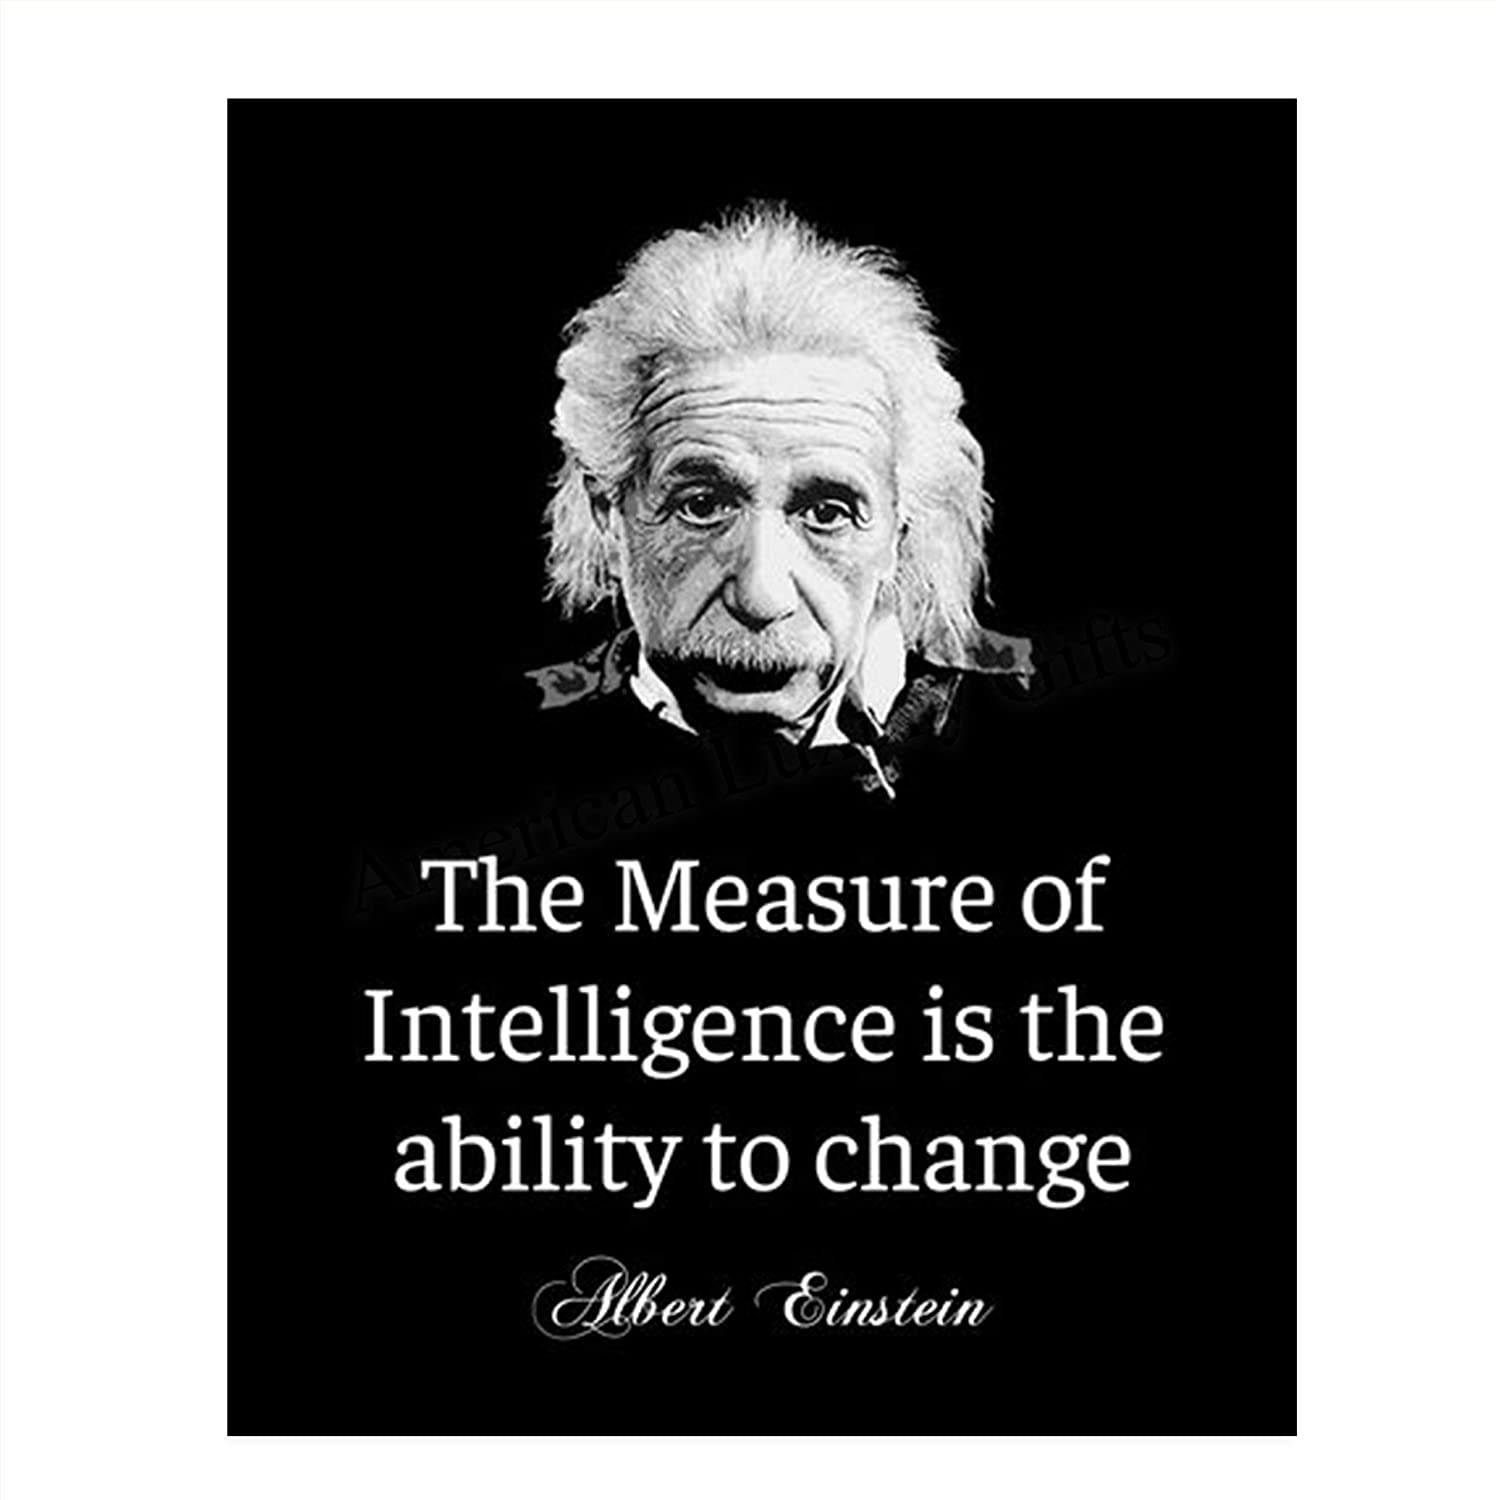 """Albert Einstein Quotes Wall Art- """"The Measure of Intelligence""""- 8 x 10"""" Typographic Wall Print- Ready to Frame. Home-Office-Studio Decor. Perfect Classroom Addition for Inspiration & Motivation."""